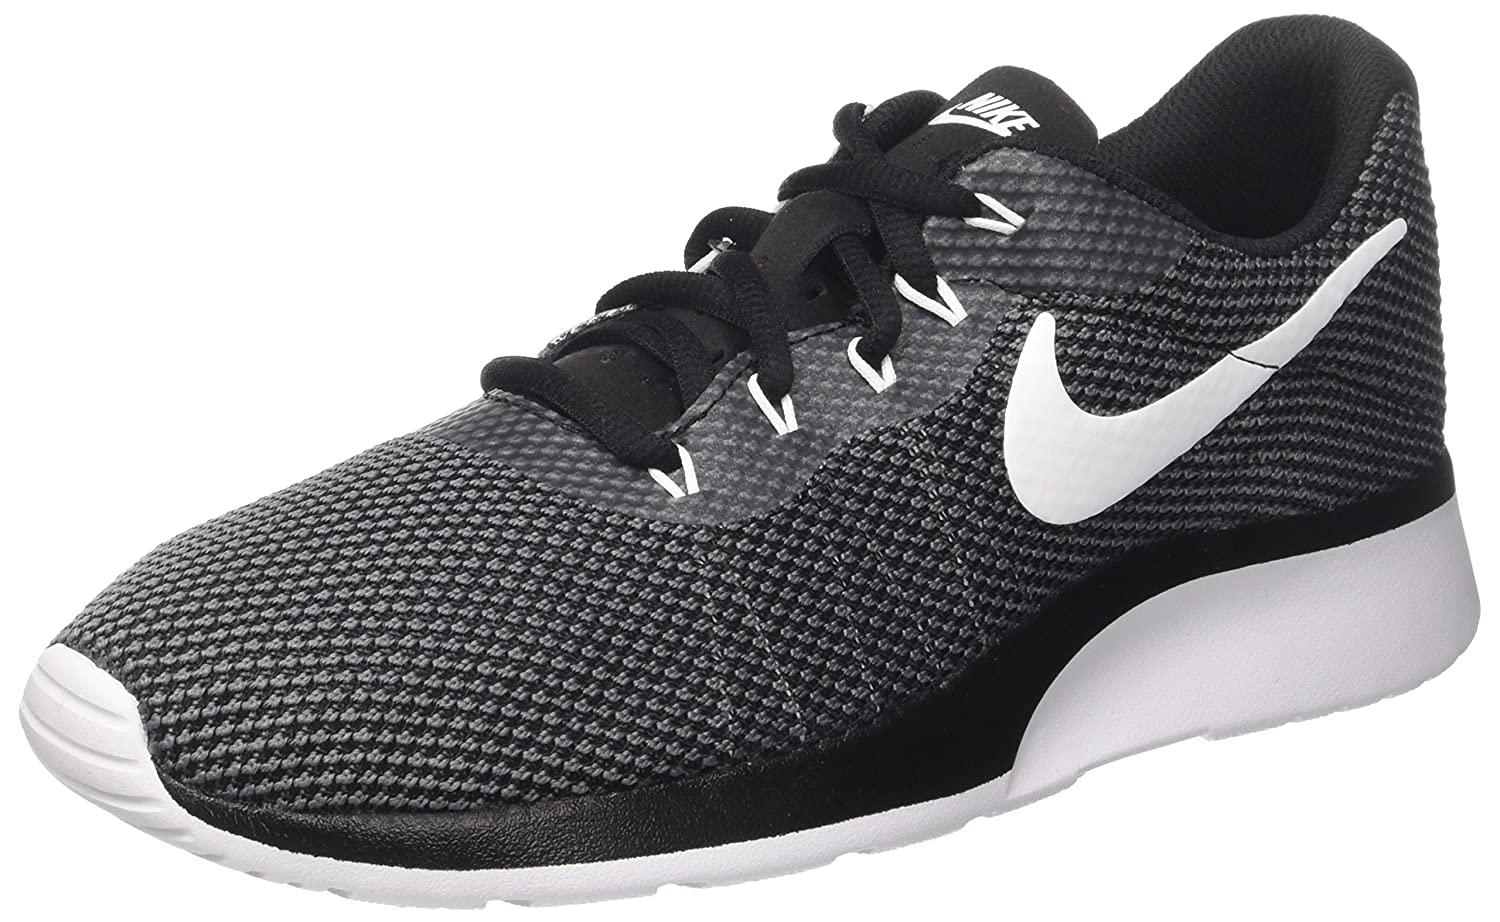 size 40 e90c8 f4d6d Amazon.com  NIKE Mens Tanjun Sneakers, Breathable Textile Uppers and  Comfortable Lightweight Cushioning  Fashion Sneakers